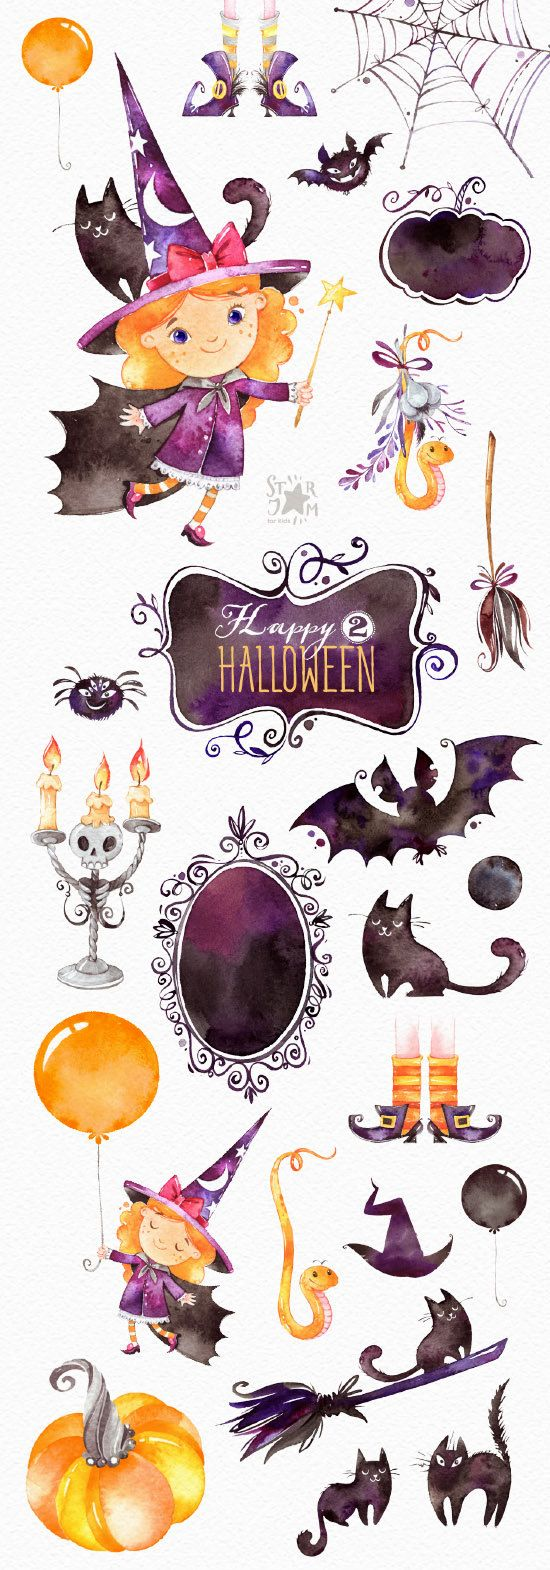 Best 25 shopping clipart ideas on pinterest food for Decoracion para halloween